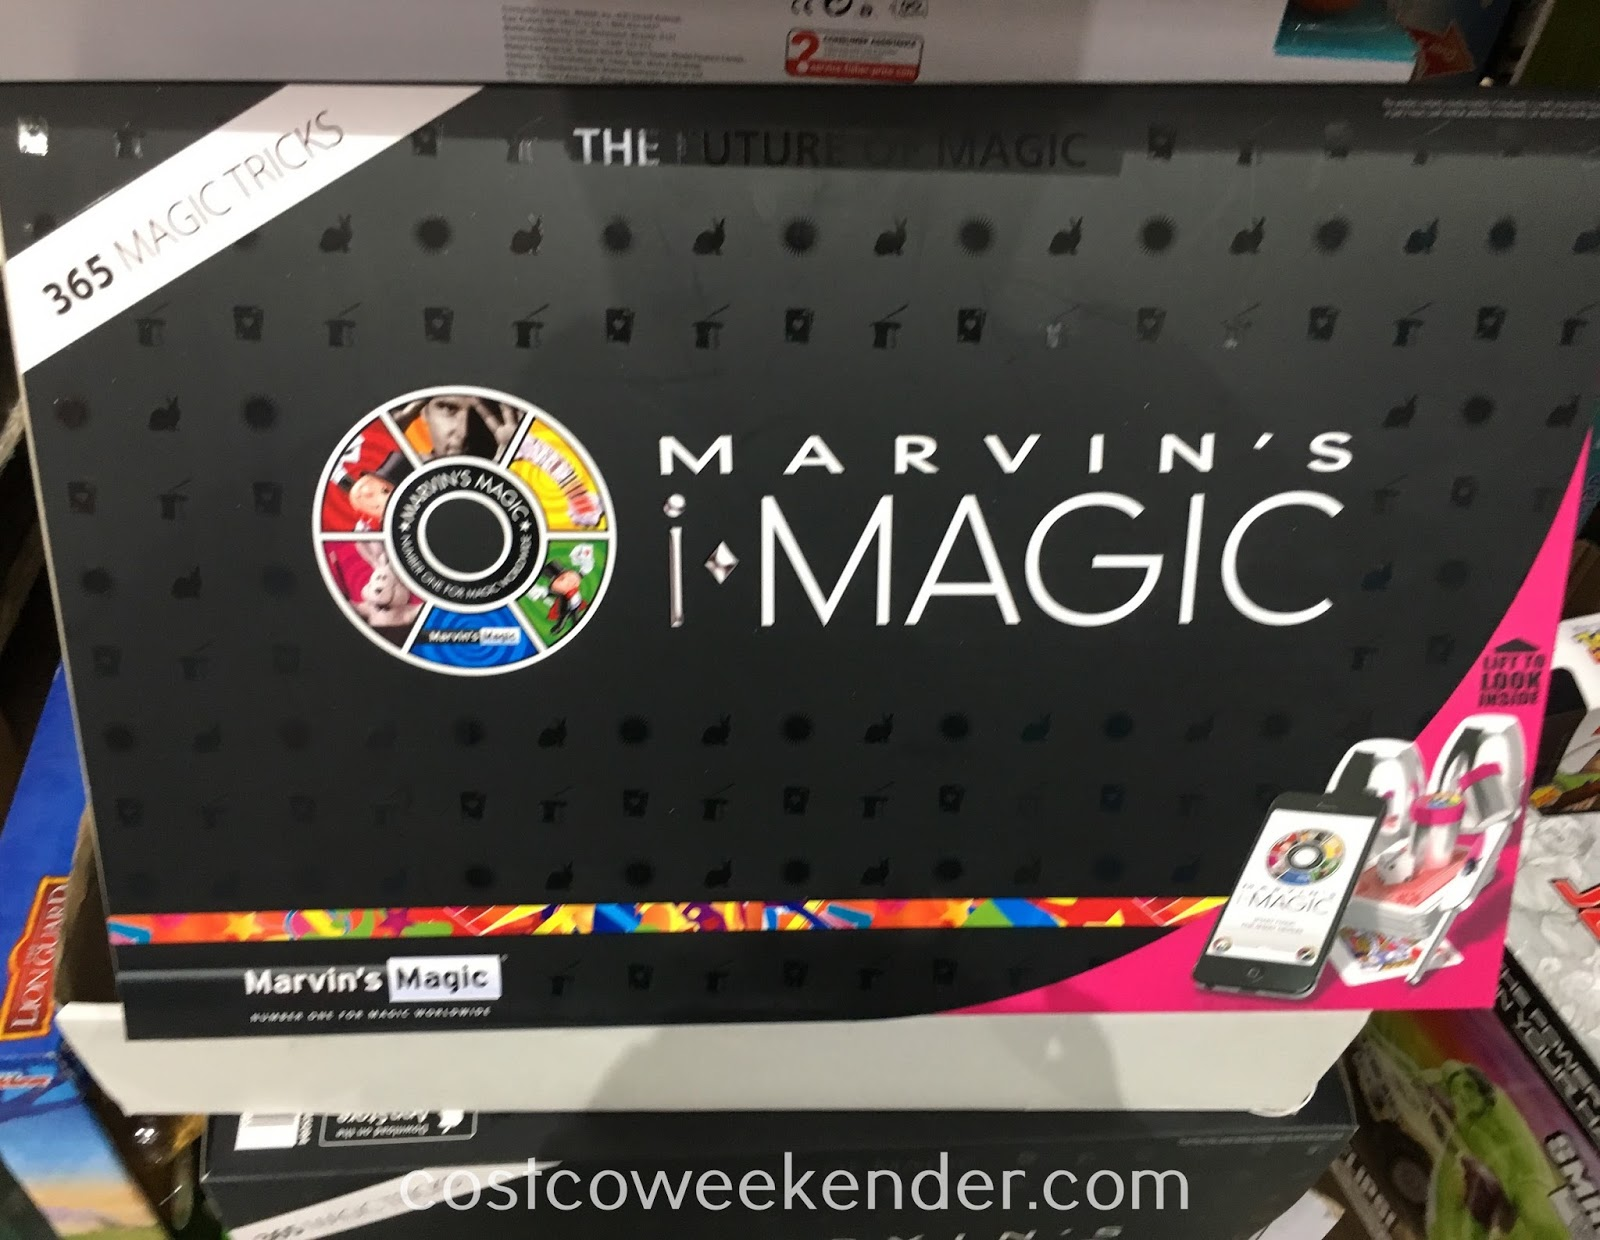 Prepare to amaze your friends with Marvin's Magic iMagic Set